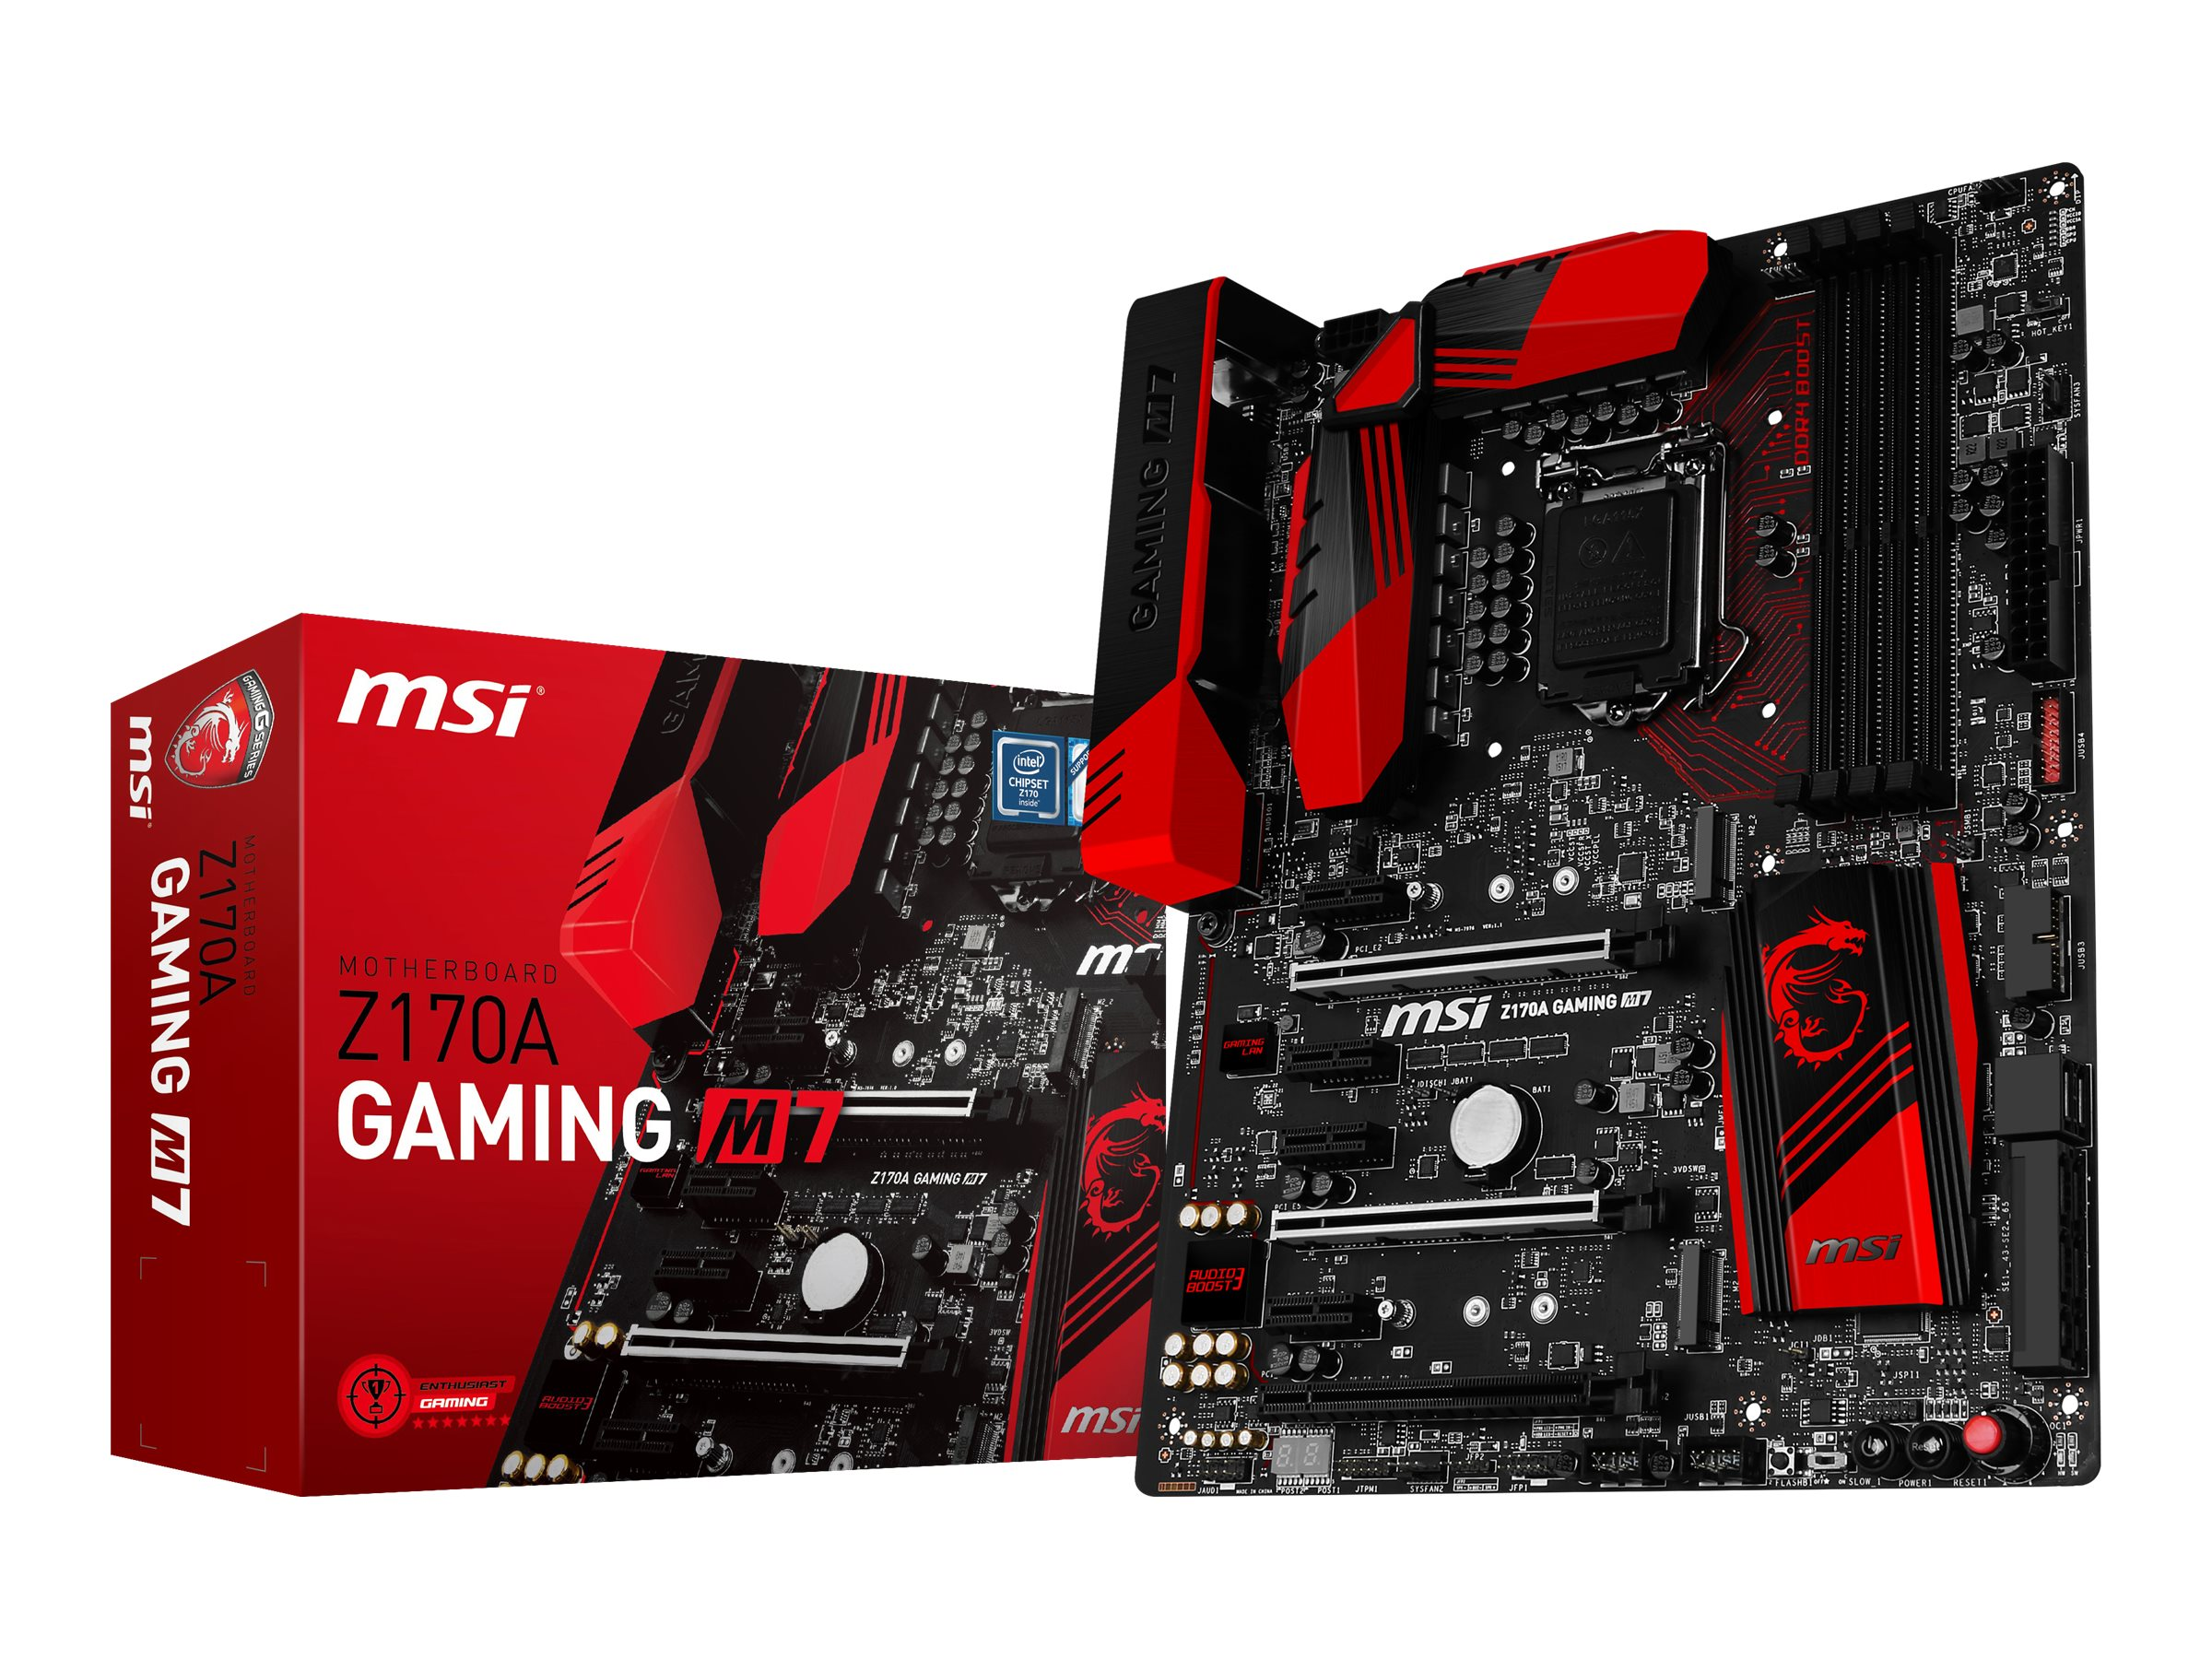 Microstar Motherboard, Z170A Gaming M7, Z170A Gaming M7